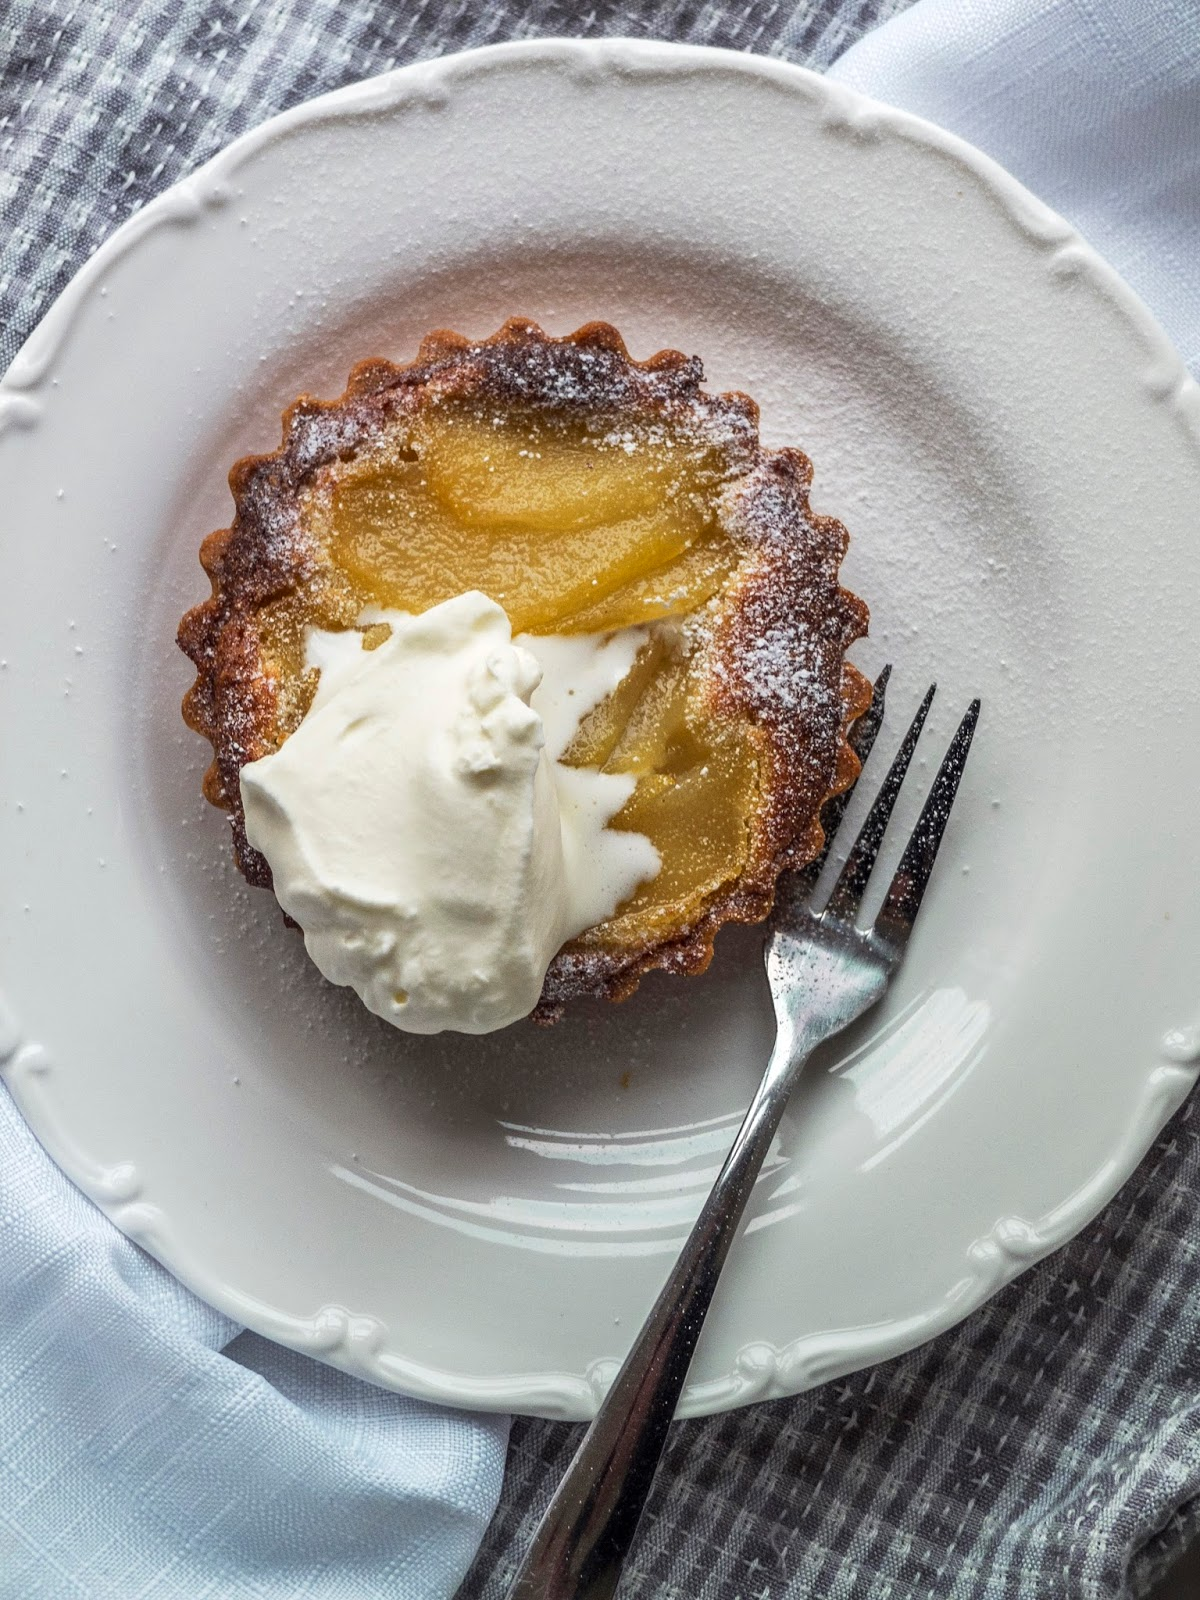 Food photo of a pear tart on a white plate and white cloth.